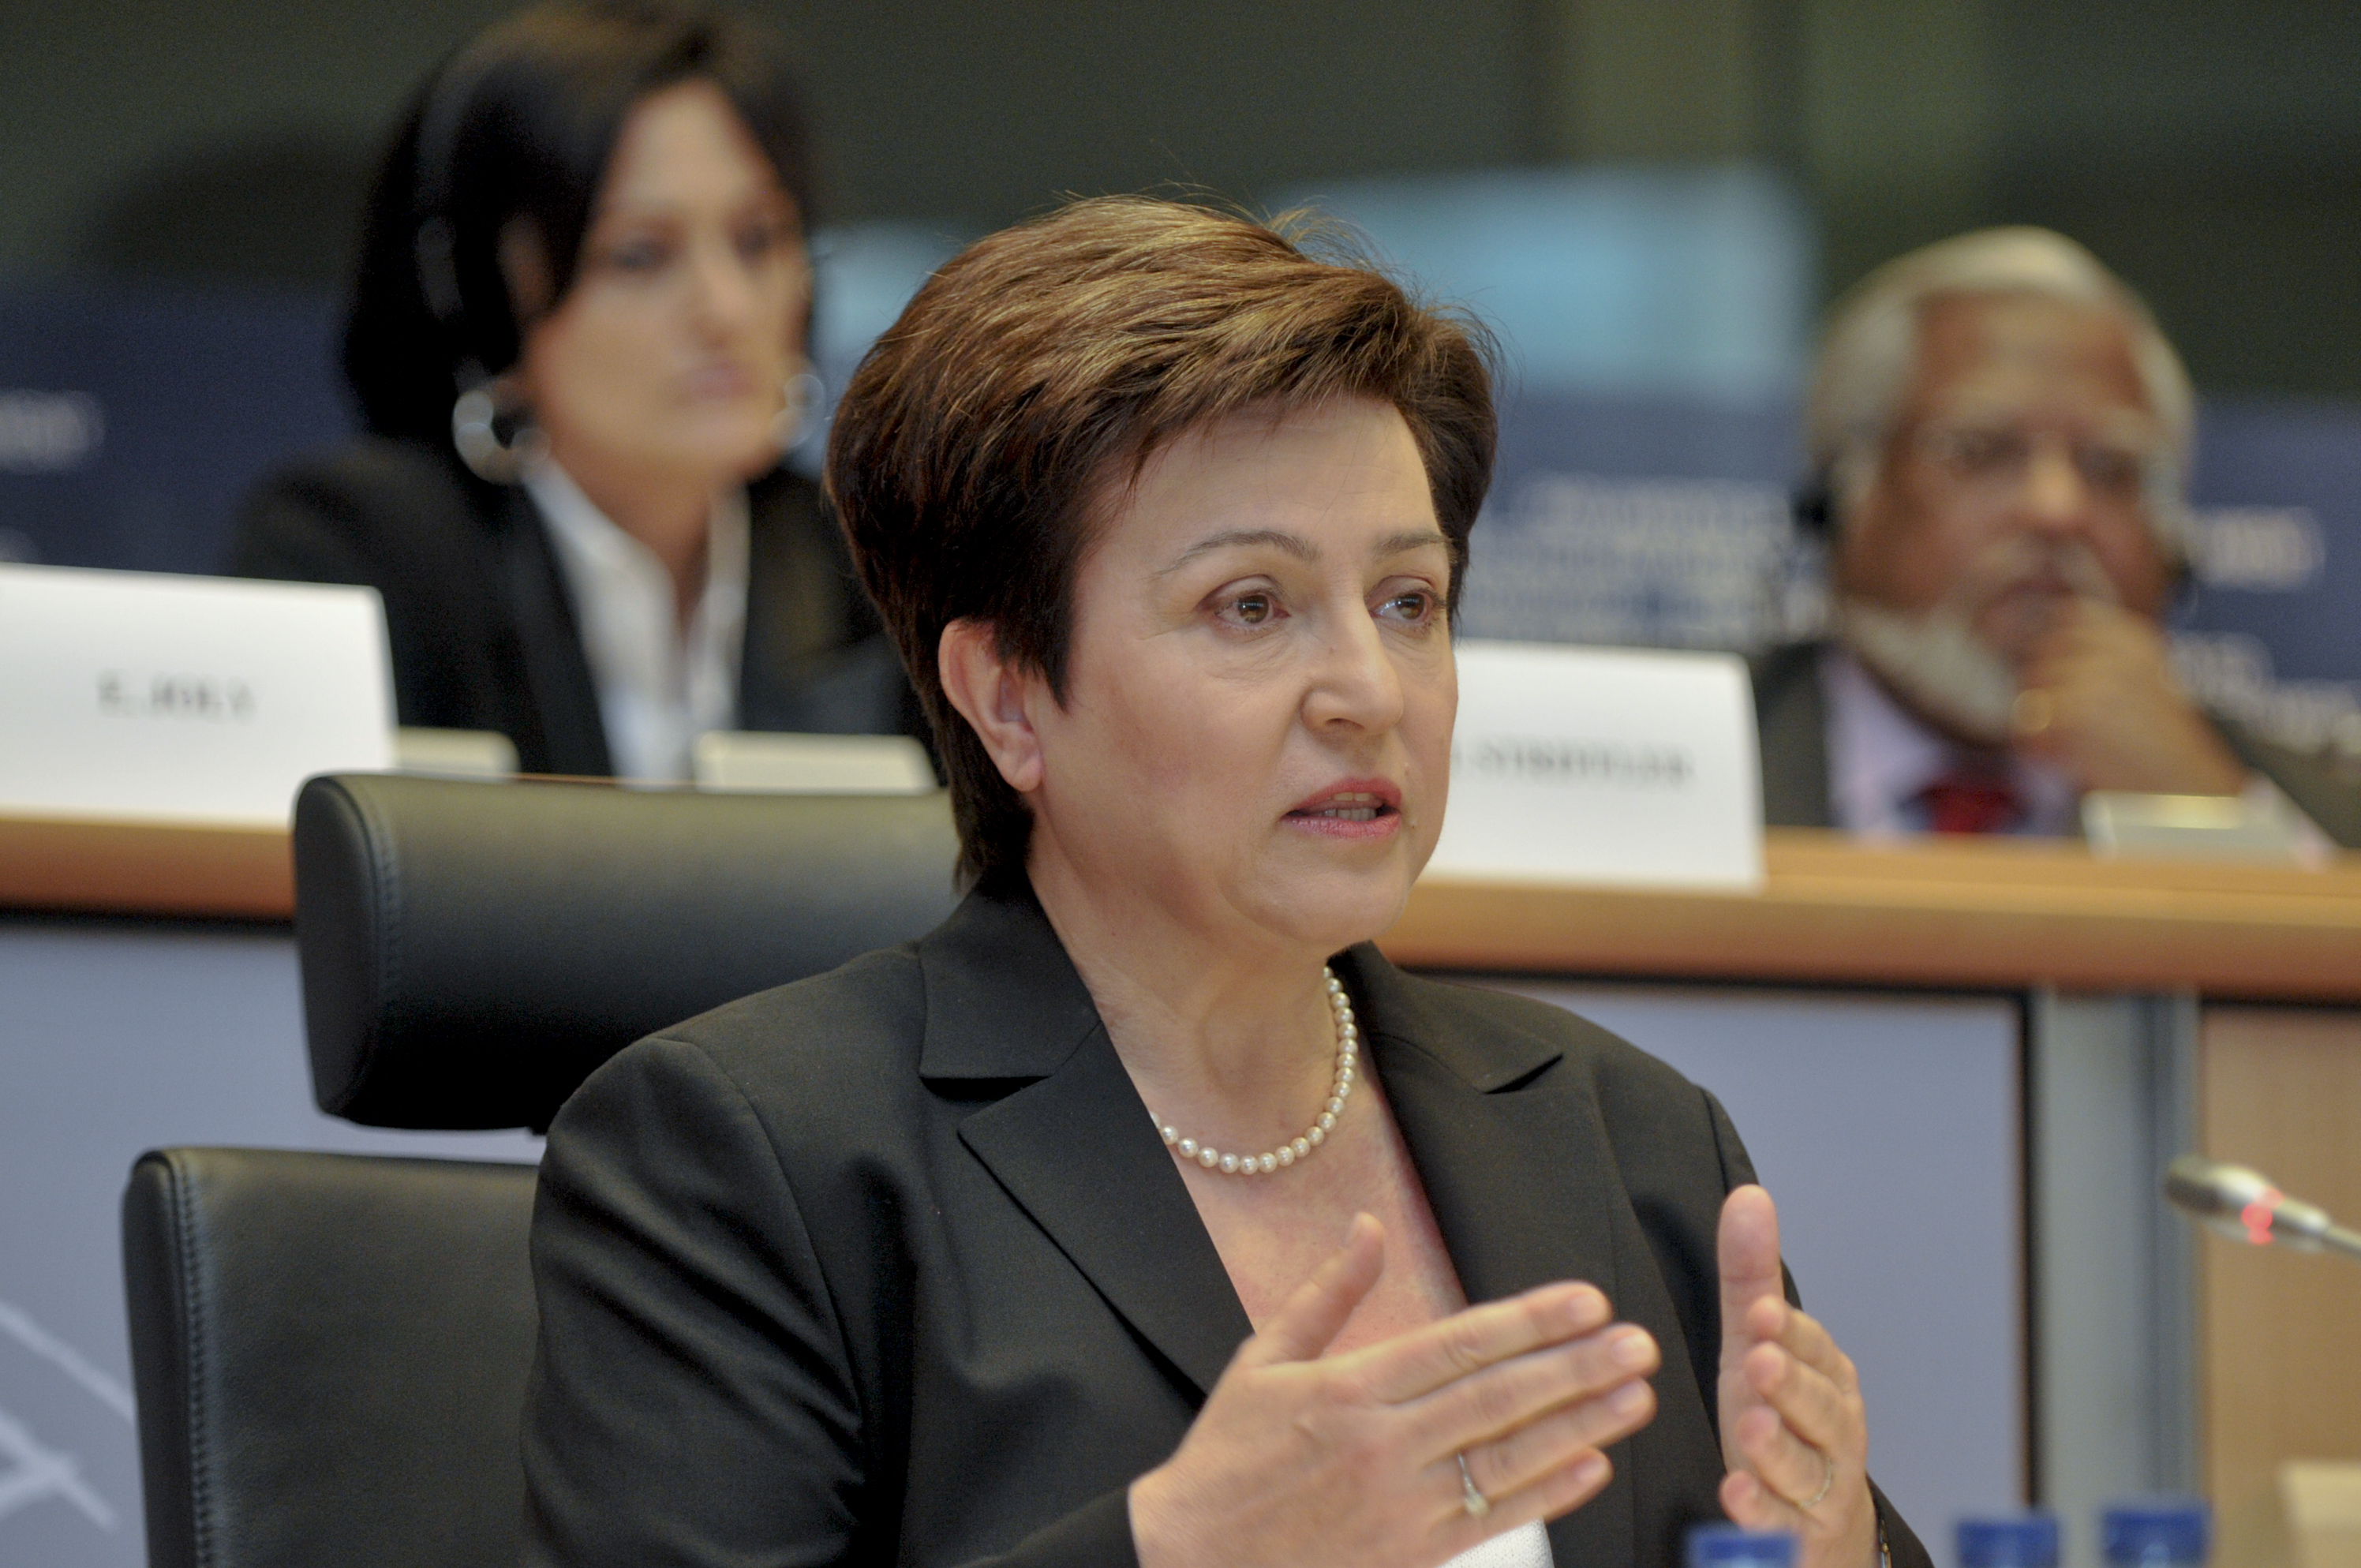 Commission du dŽveloppement ˆ Bruxelles Audition de Kristalina Georgieva(Bulgarie), Commissaire-dŽsignŽe responsable pour la CoopŽration internationale, aide humanitaire et rŽponse ˆ la crise - Committee on Development in Brussels Hearing of Kristalina Georgieva (Bulgaria), Commissioner-designate for International Cooperation, Humanitarian Aid and Crisis Response